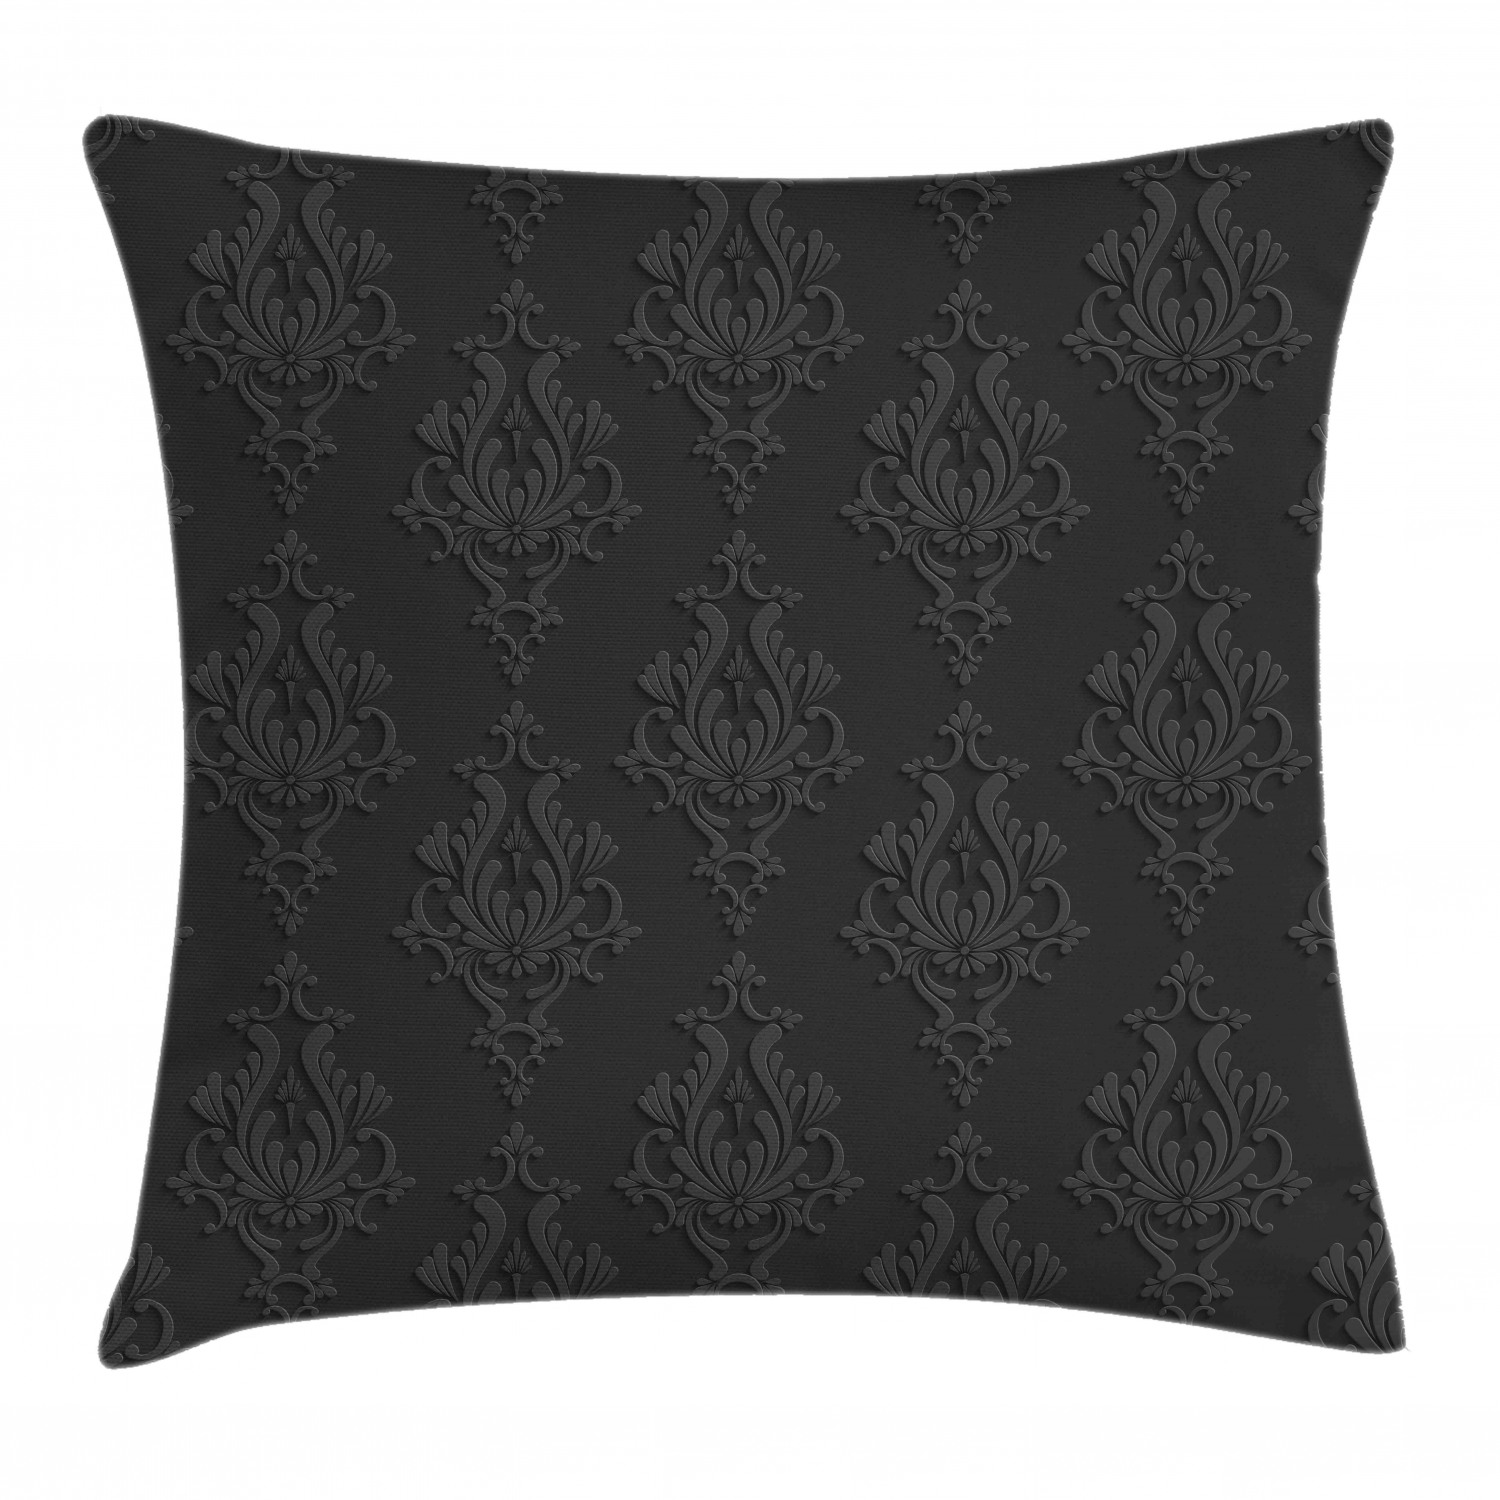 dark grey throw pillow cushion cover antique damask pattern in 3d style classic old fashioned floral design decorative square accent pillow case 24